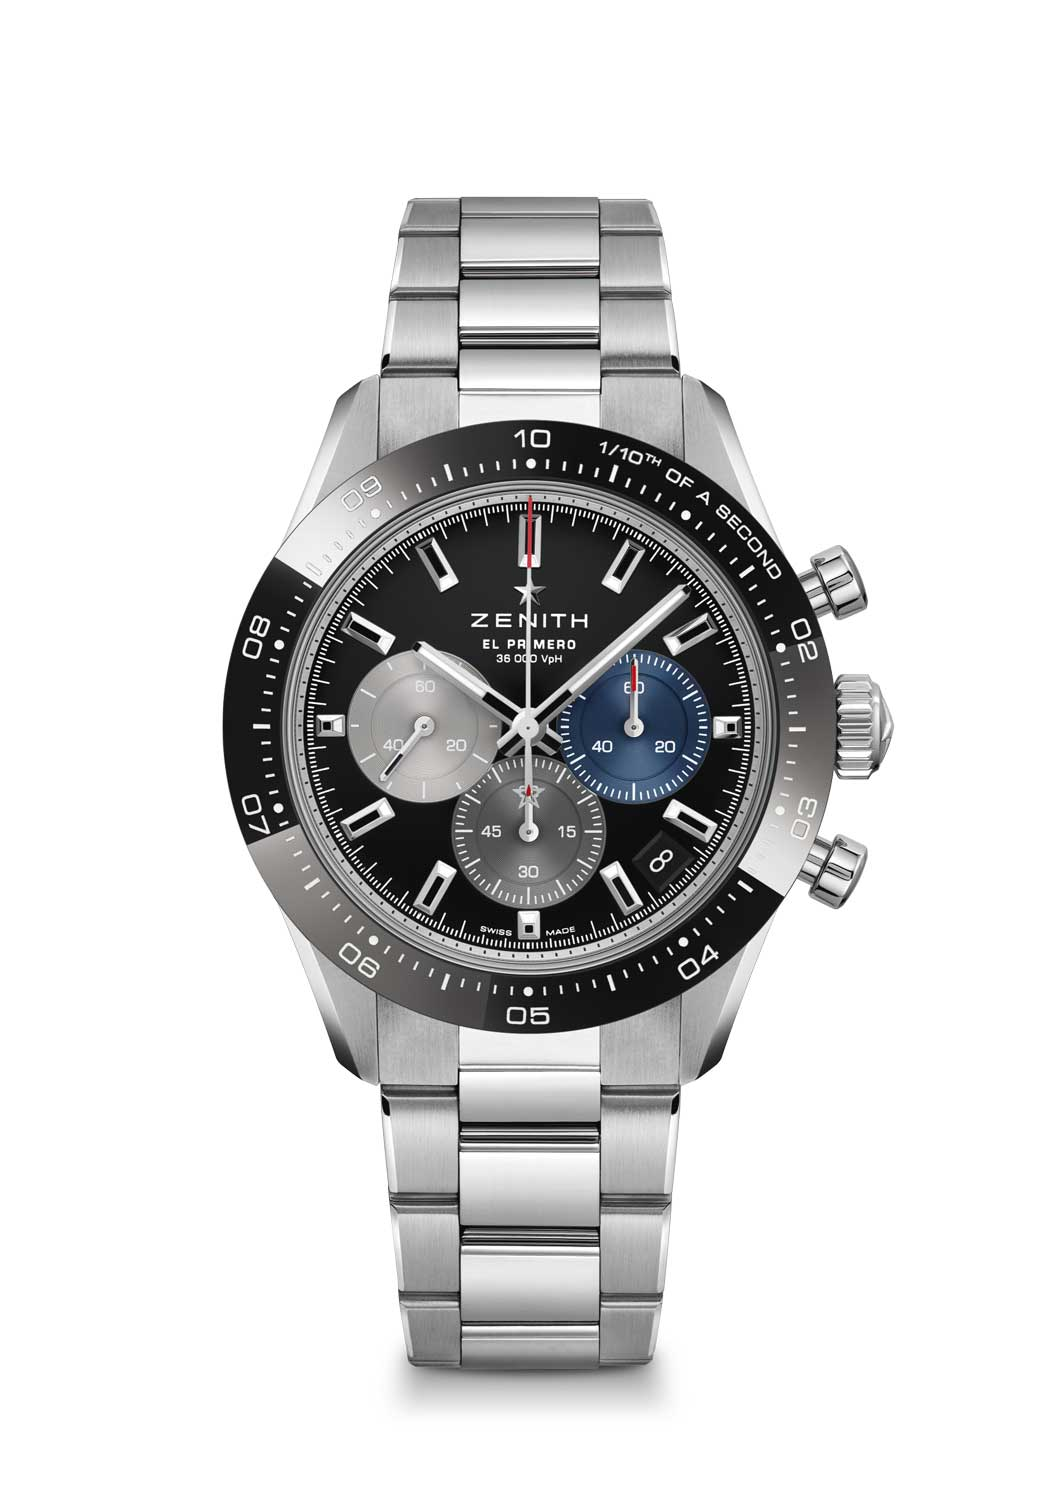 Zenith Chronomaster Sport ref. 03.3100.3600/21.M3100 with a black dial, fitted on a stainless steel bracelet